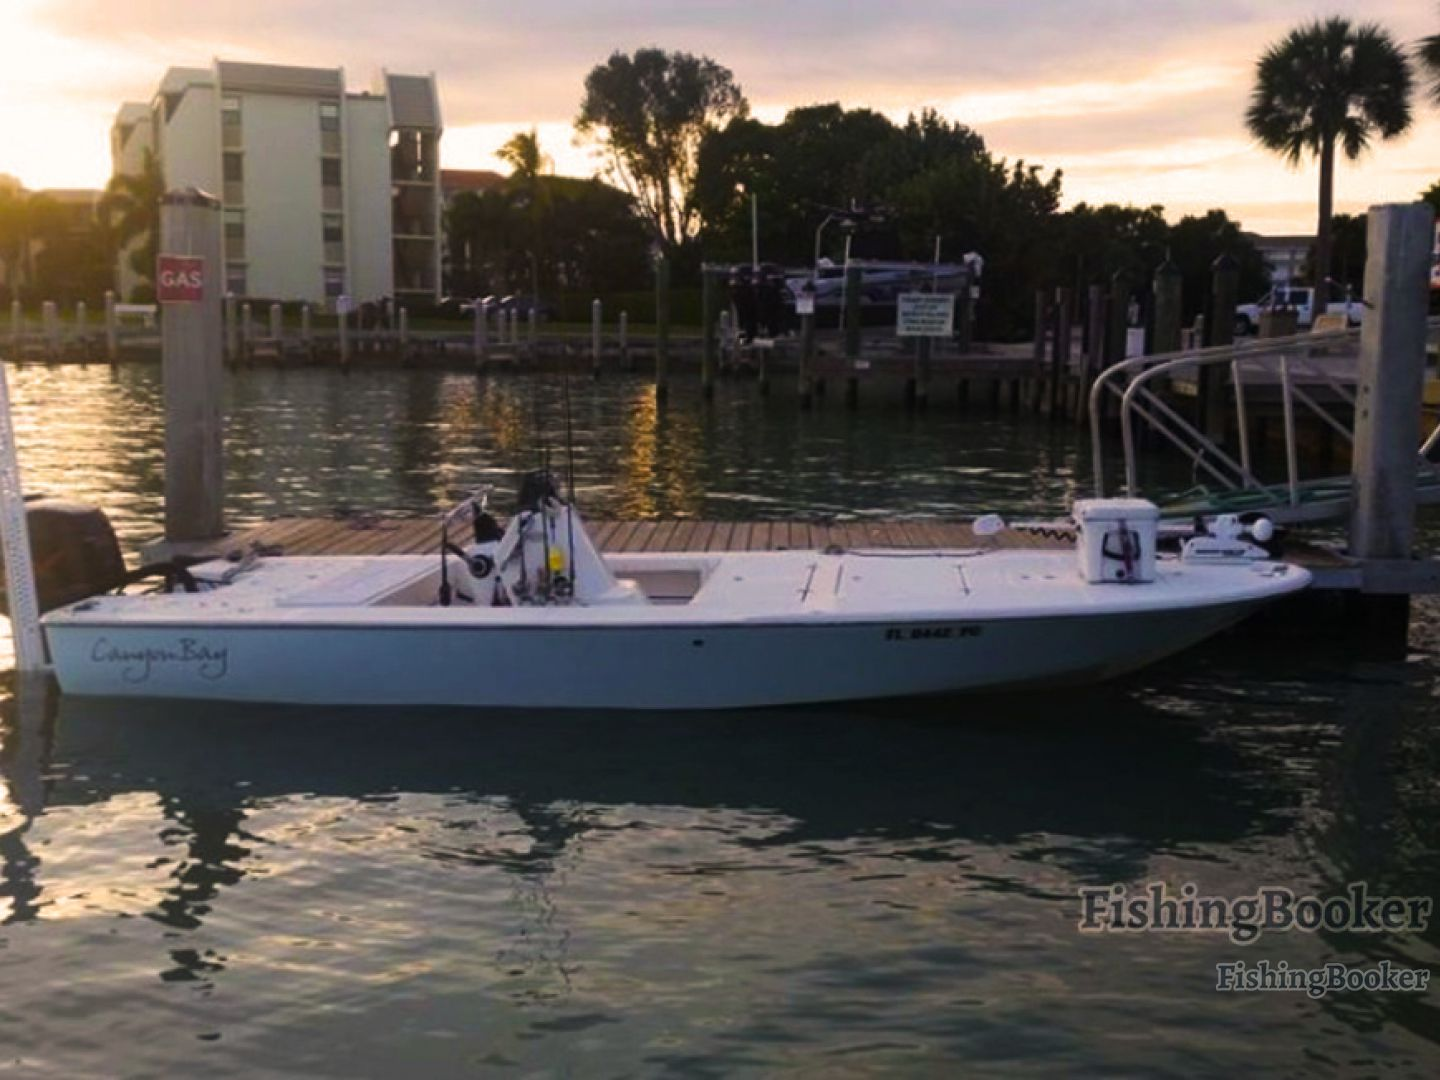 Live action fishing charters marco island florida for Charter fishing marco island